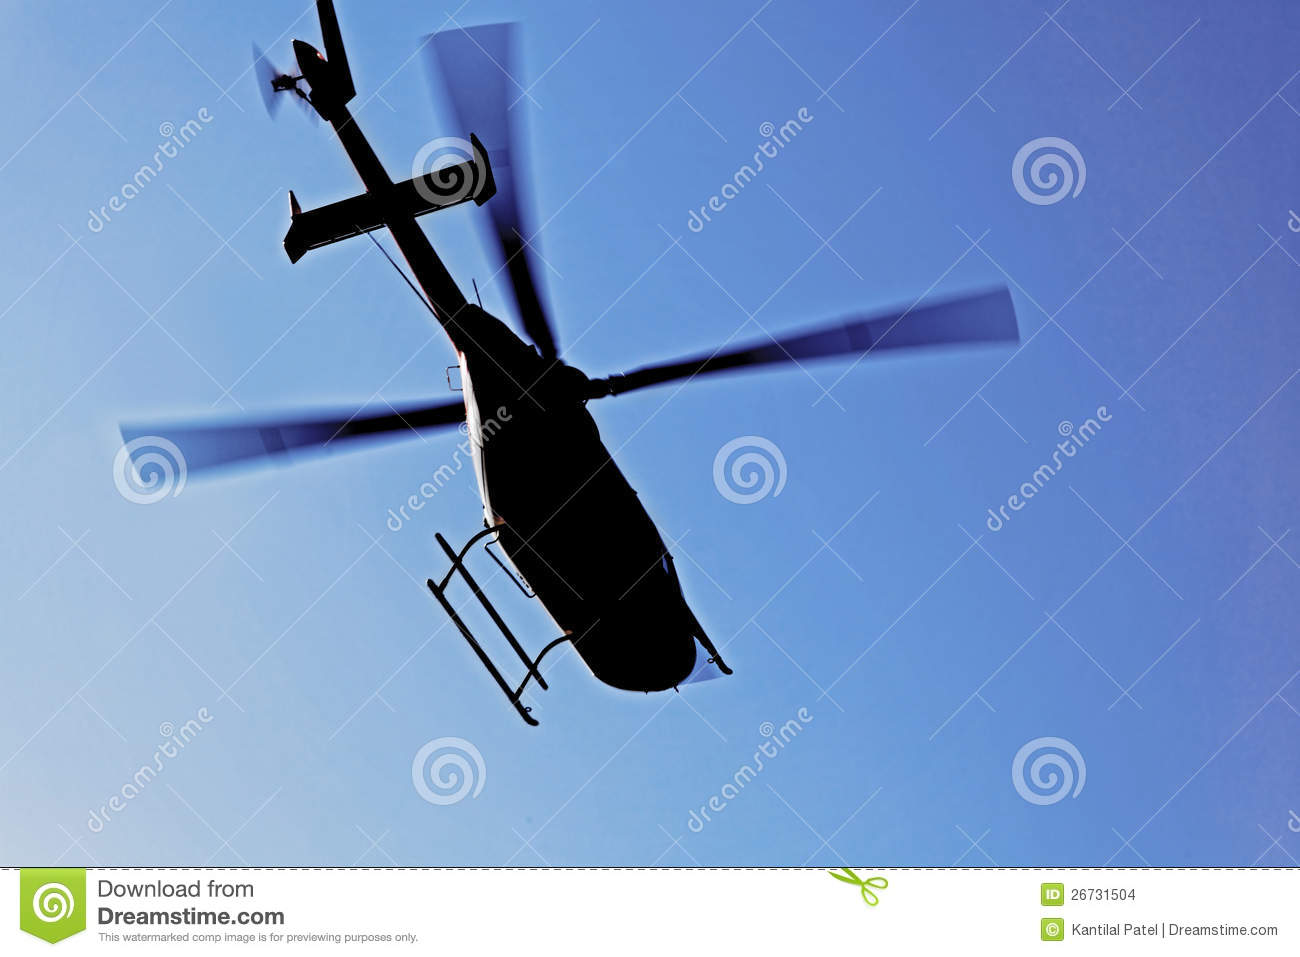 Helicopter silhouette in flight